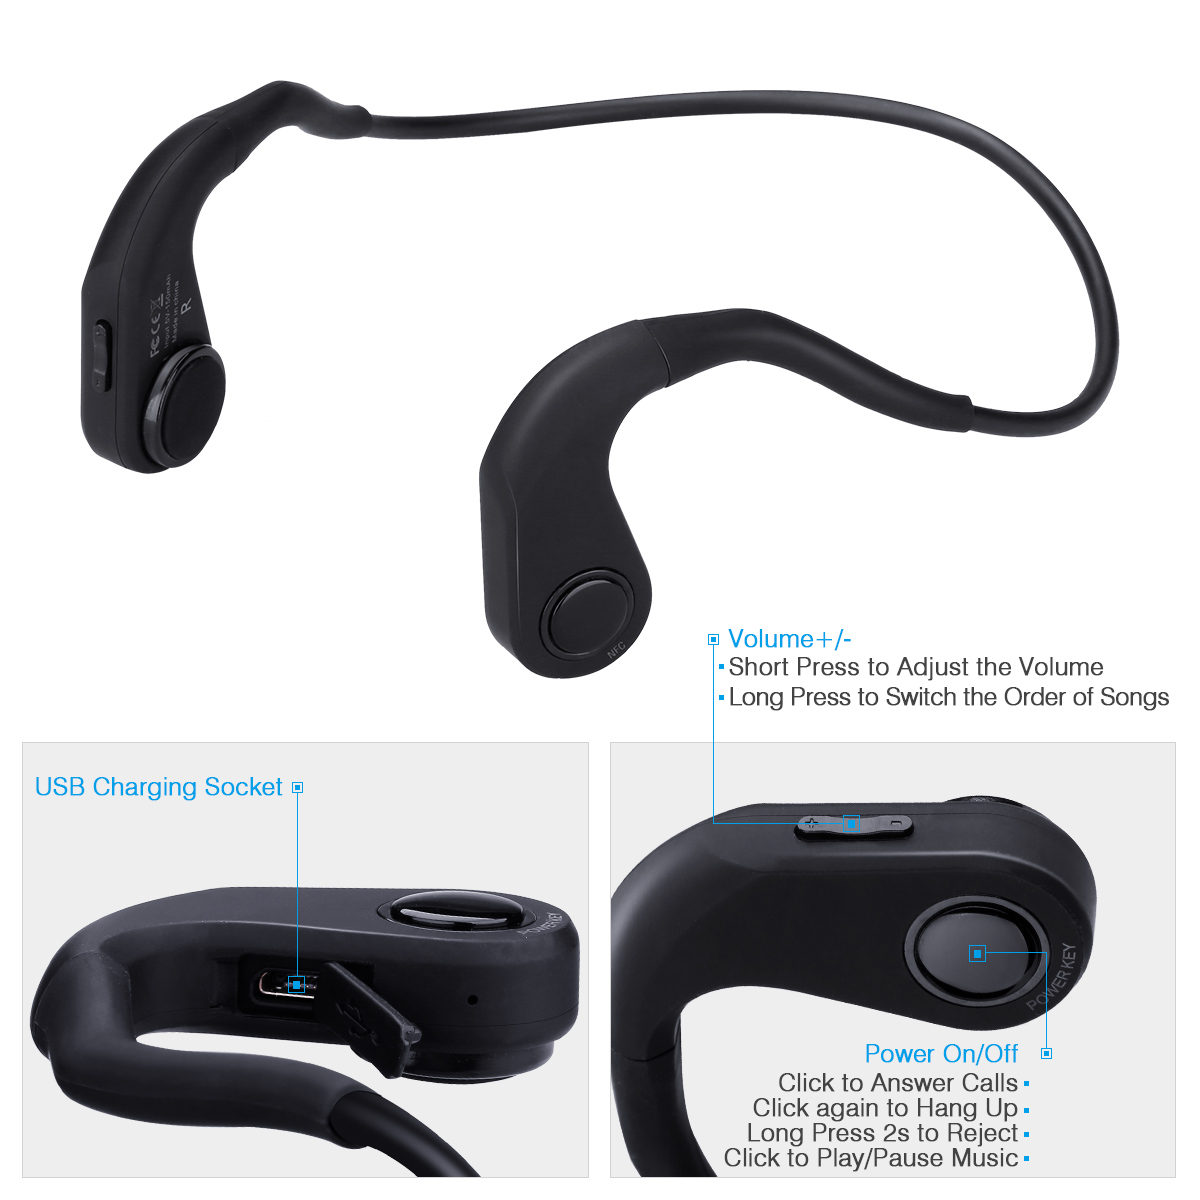 Excelvan Bone Conduction Headphones, Wireless Bluetooth Bone Conduction Headsets Lightweight Stereo Hands-Free Sports Wireless Earphones with Microphone and Volume Control